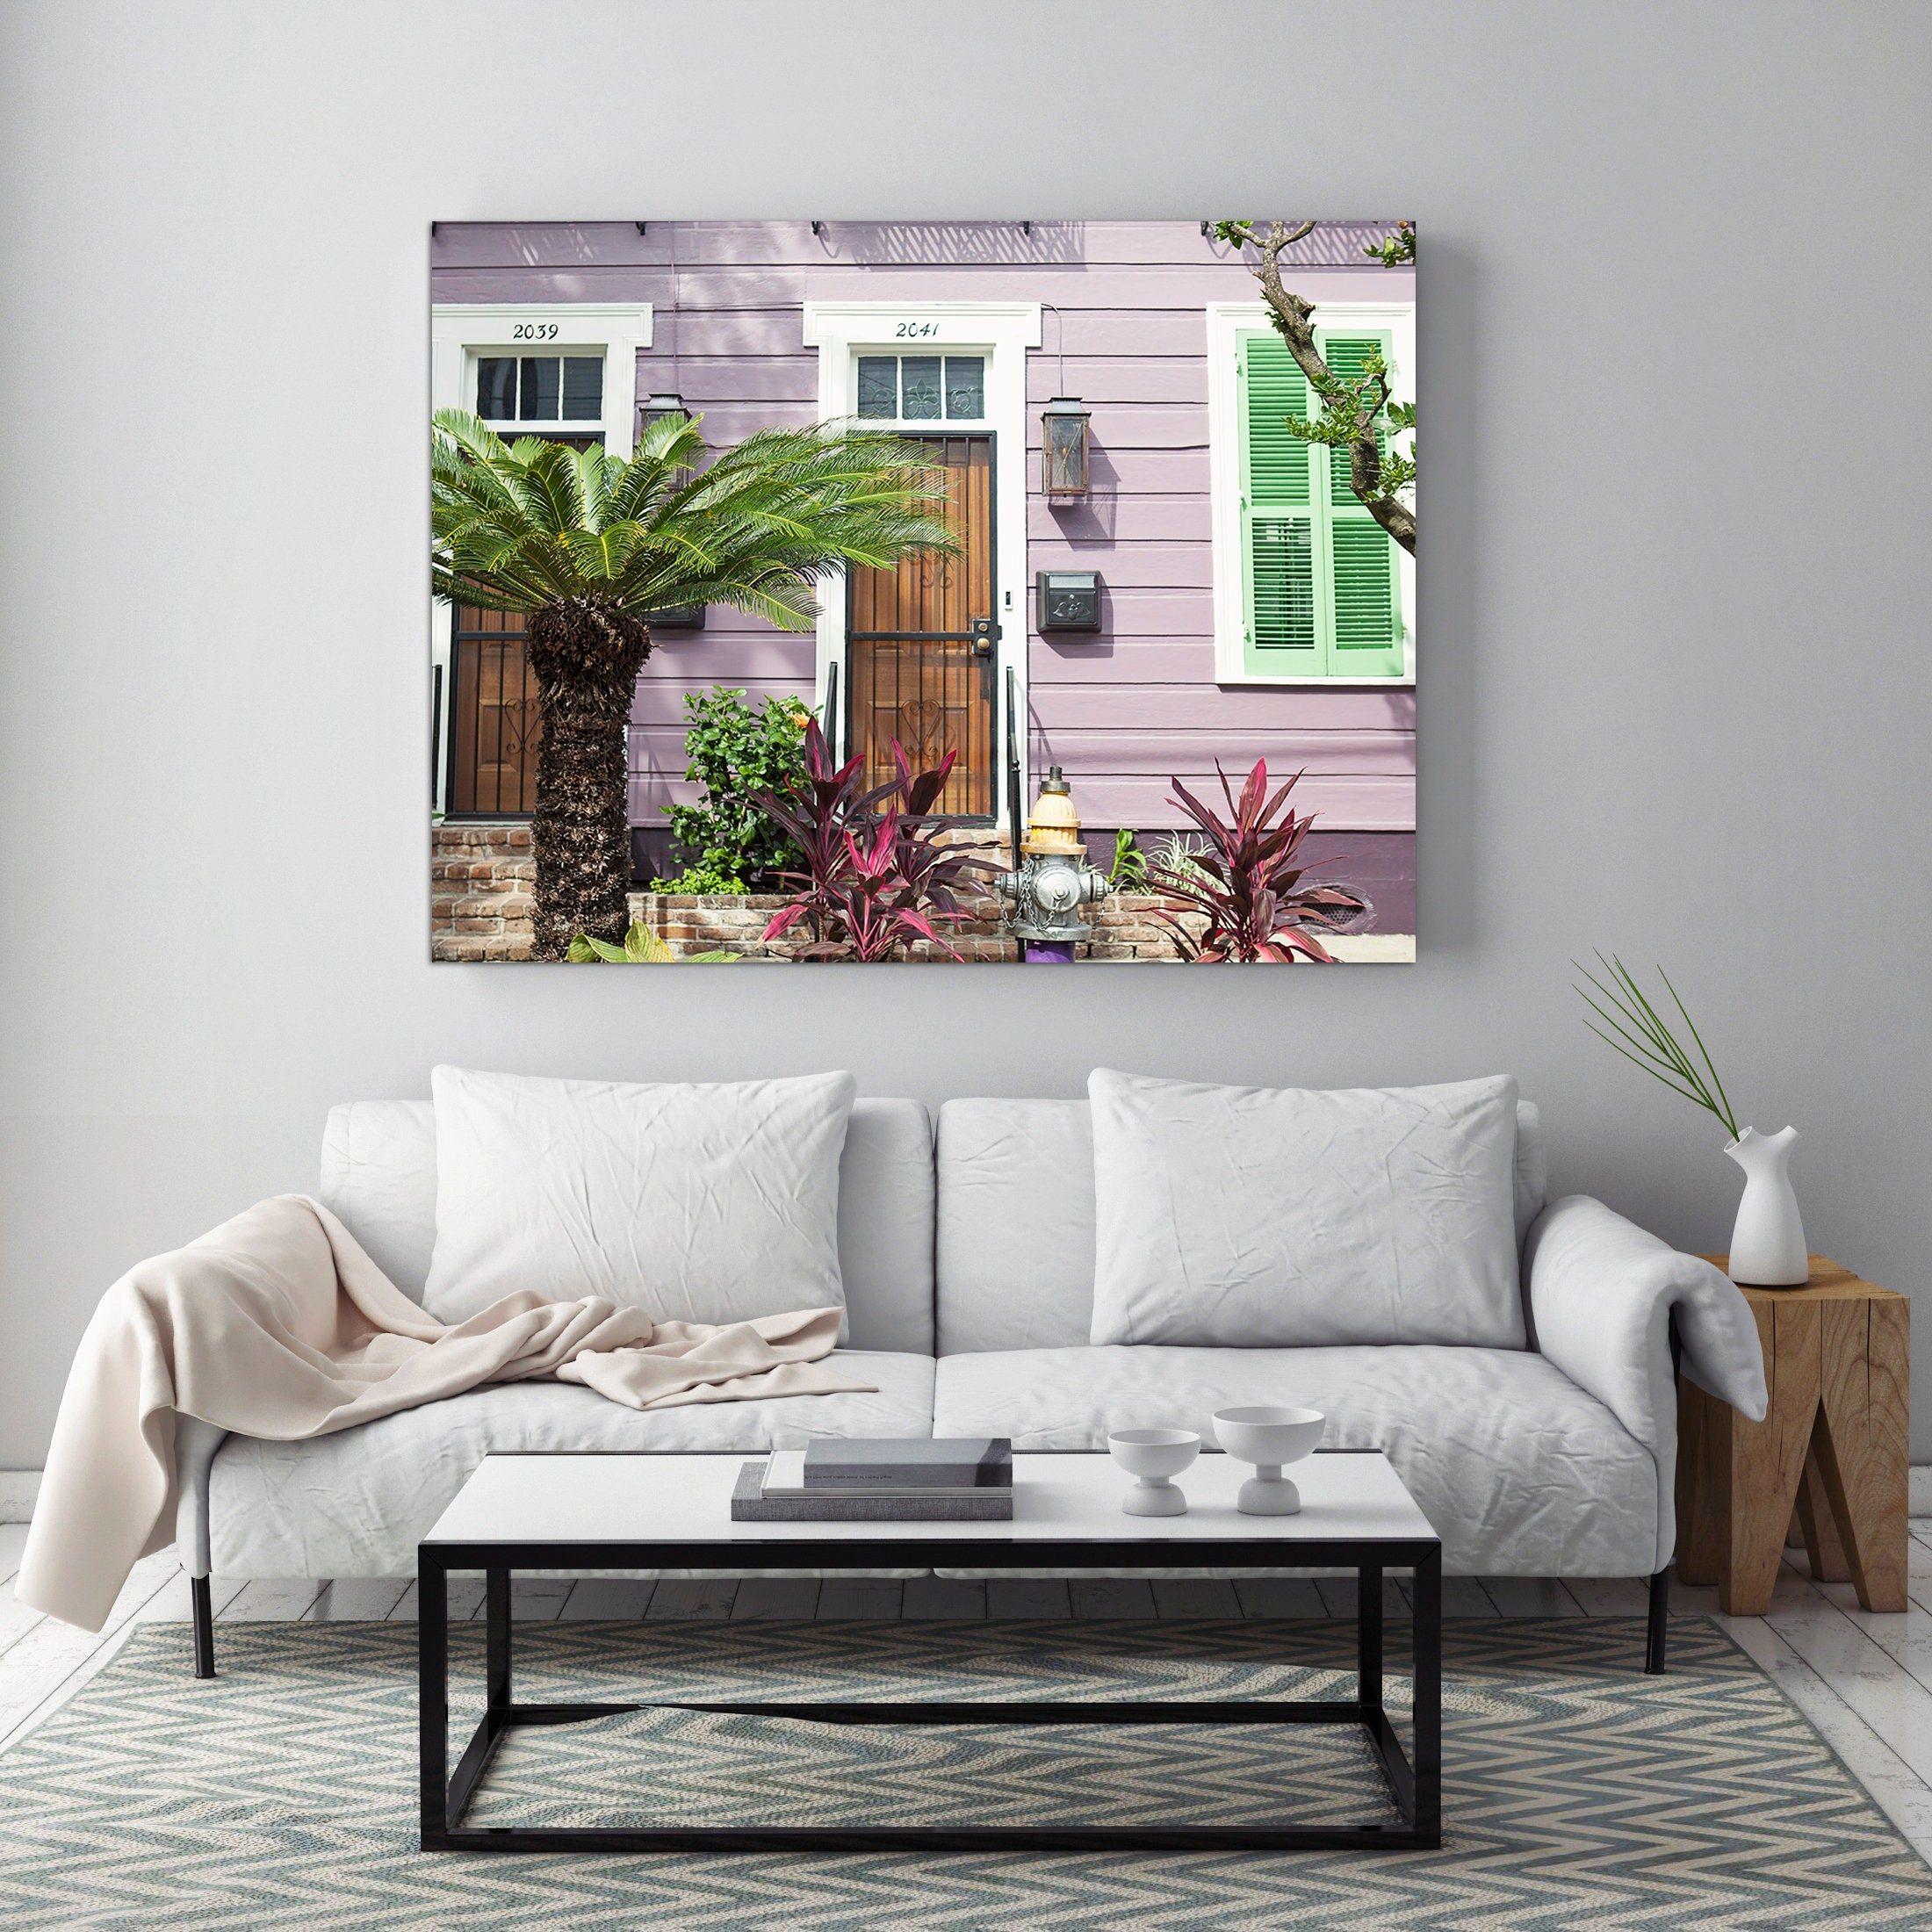 Home Decor New Orleans: Living Room Art New Orleans Print Louisiana Home Decor